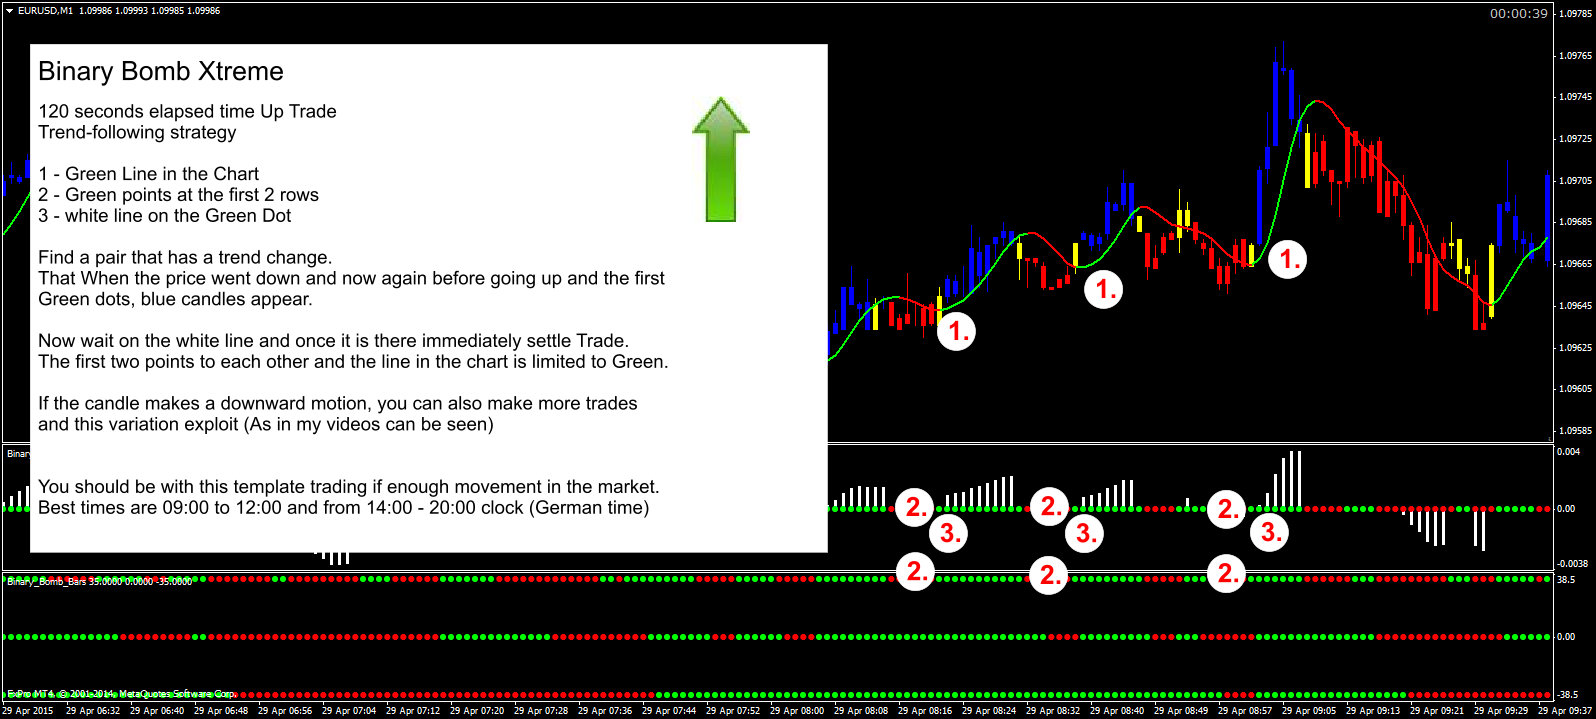 Binary options strategy 120 seconds